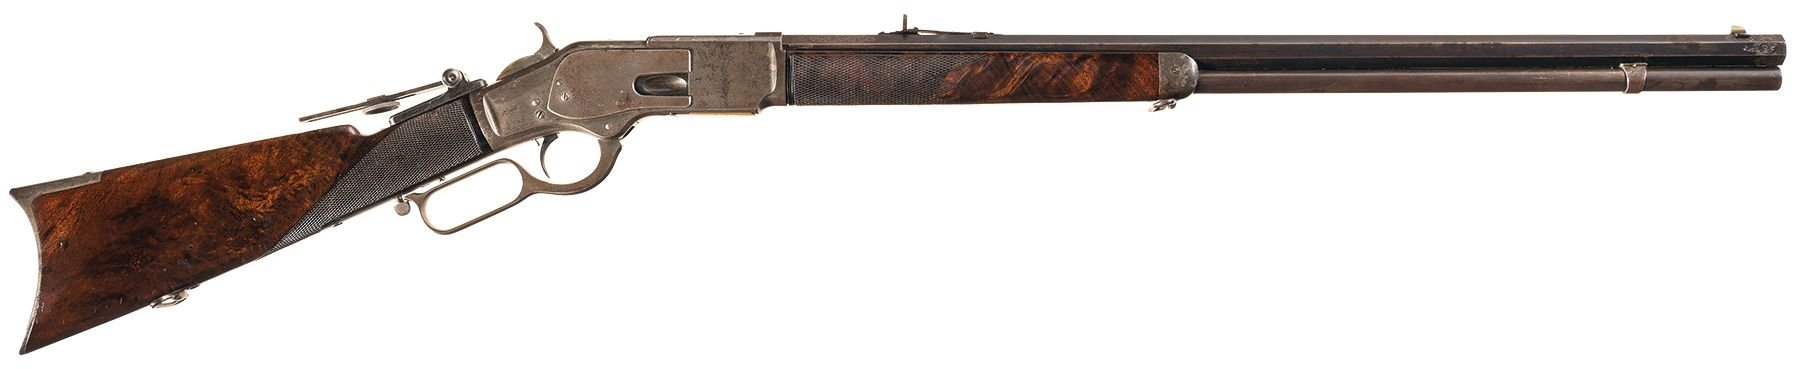 "Winchester ""One of One Hundred"" M1873 rifle"